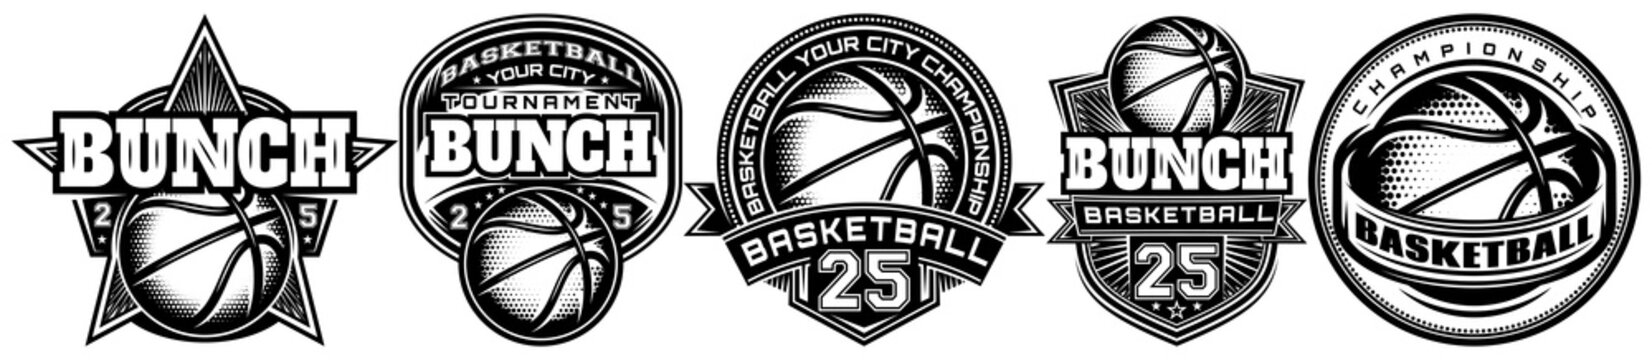 Set of monochrome templates on the theme of basketball. Vector editable illustration. Elements for business card design, style, website, print on a t-shirt